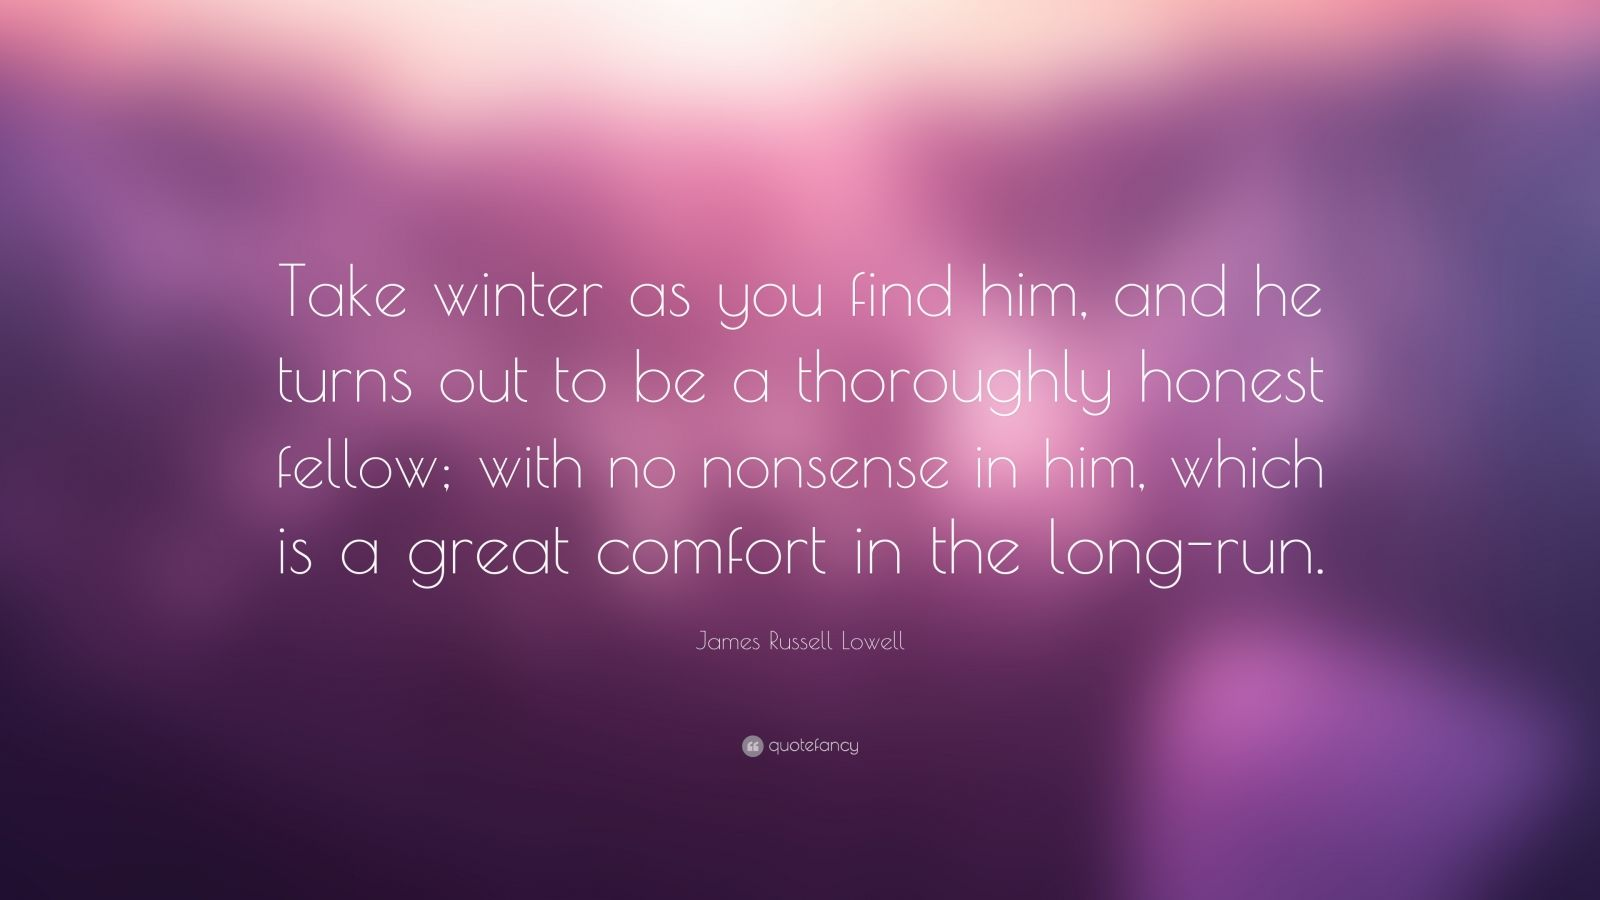 """James Russell Lowell Quote: """"Take winter as you find him, and he turns out to be a thoroughly honest fellow; with no nonsense in him, which is a great comfort in the long-run."""""""